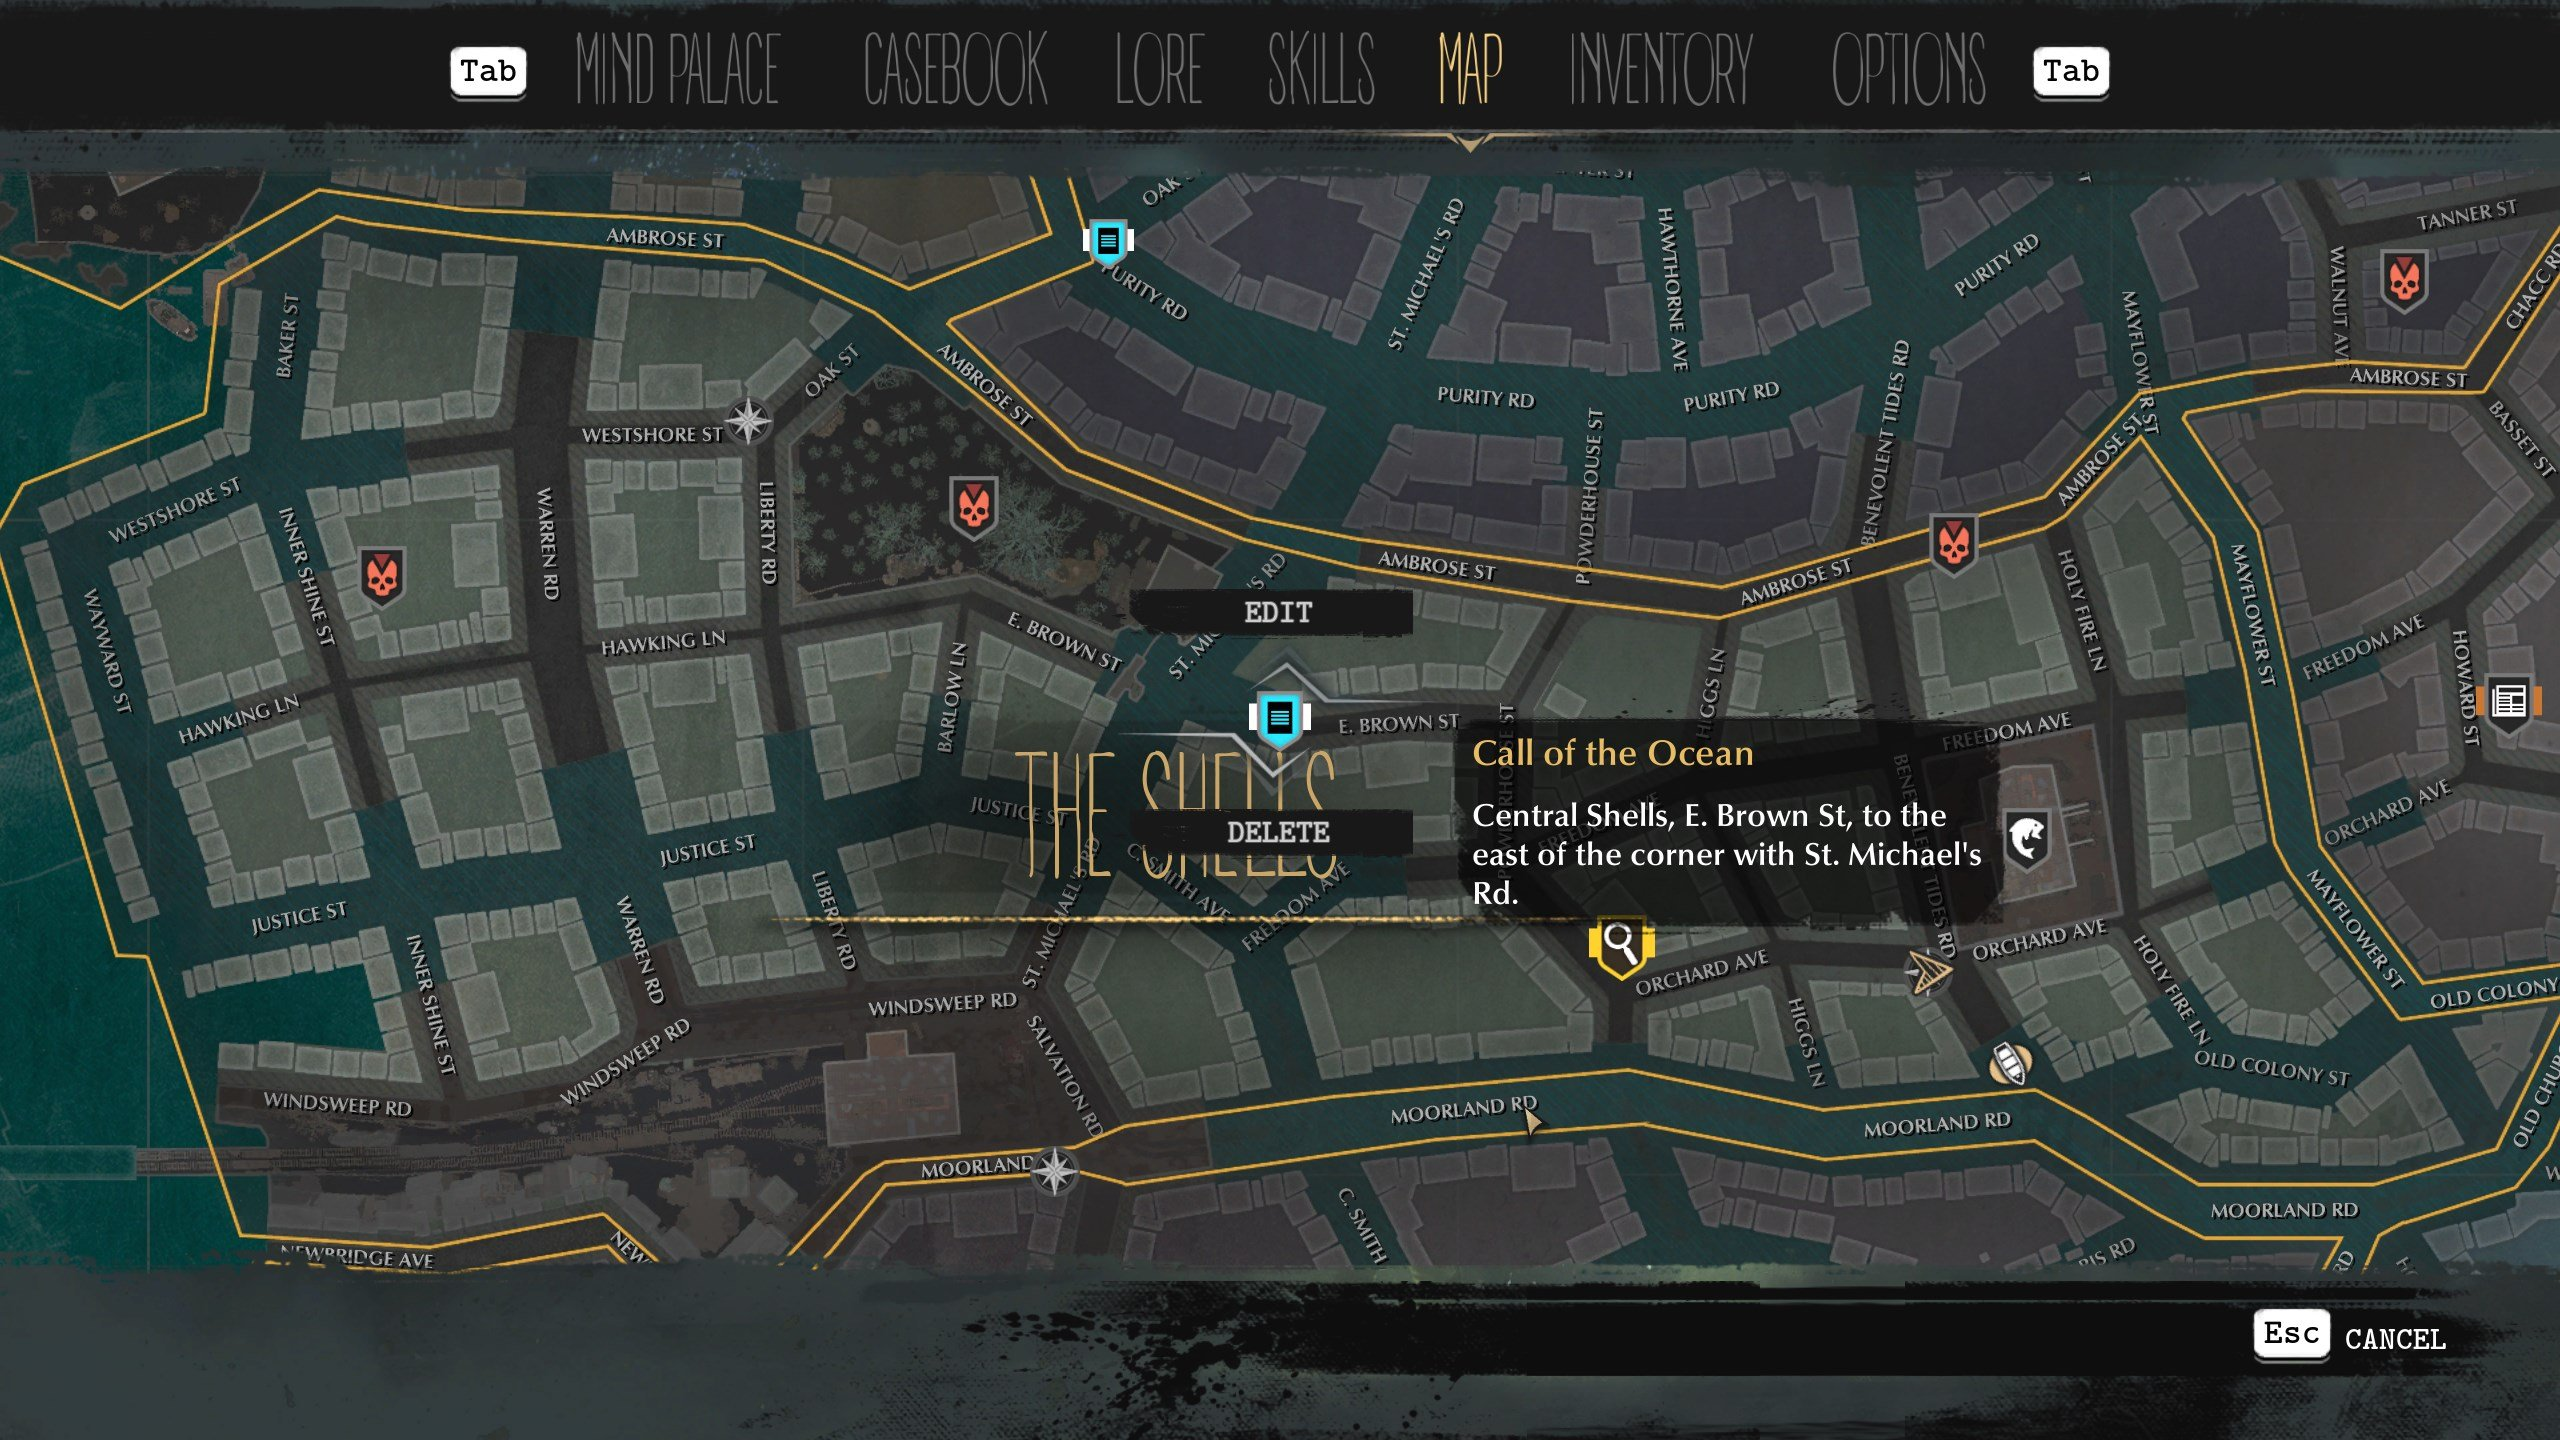 How to mark quest locations on the map in The Sinking City